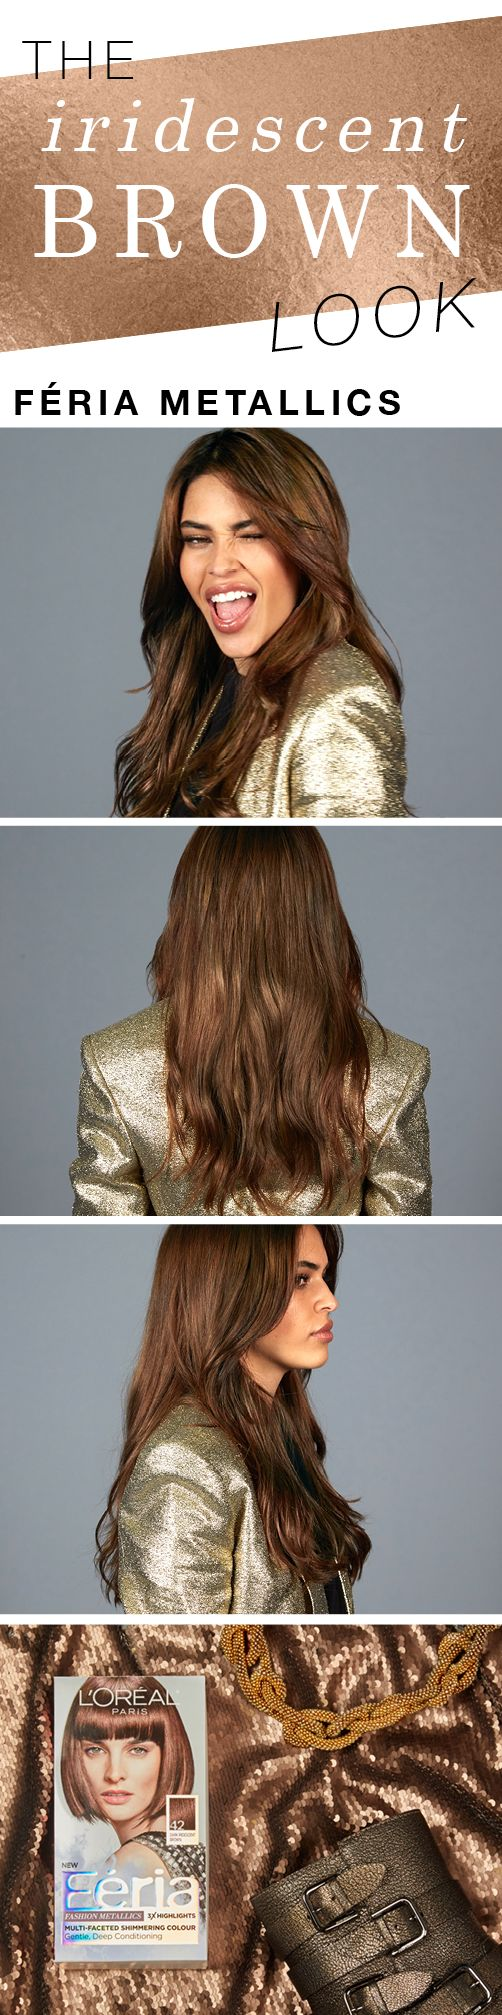 Introducing our favorite 2017 hair color trend… iridescent brown. Get multi-faceted, shimmering color that's totally trending. Féria Fashion Metallics in Iridescent Brown.